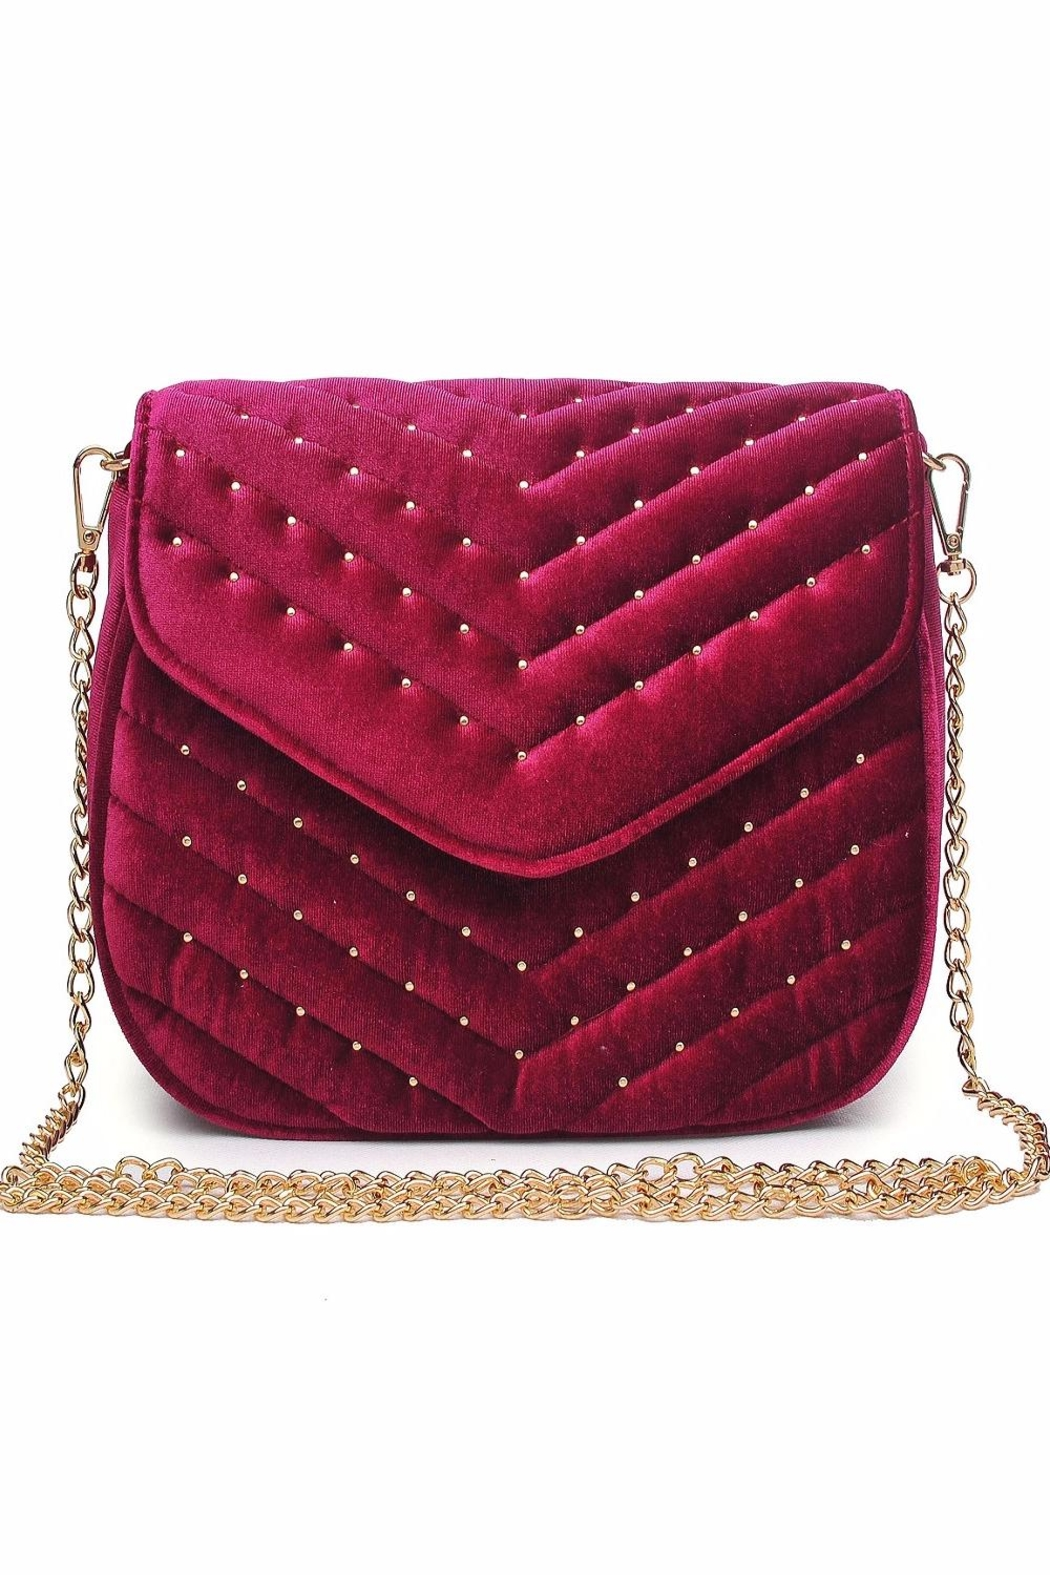 Urban Expressions Studded Velvet Clutch - Main Image